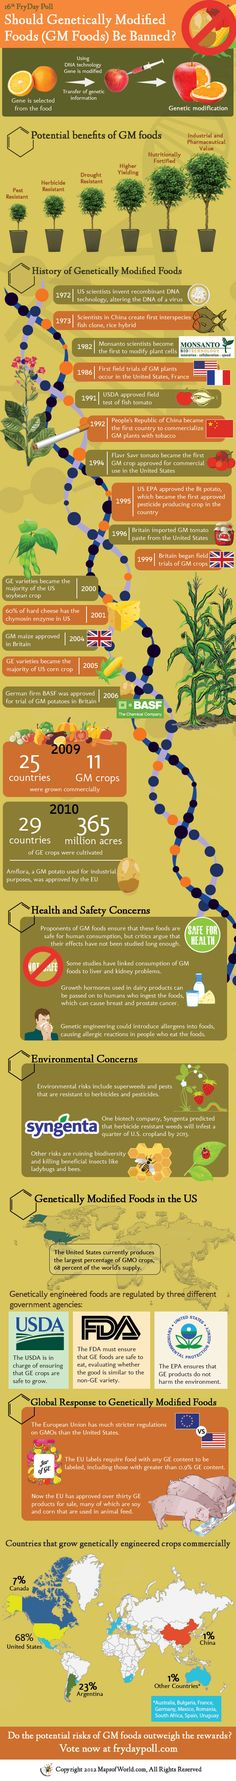 Good infographic mapping out some factoids about GMO Foods around the world via @Mapsofworld #foodeducation